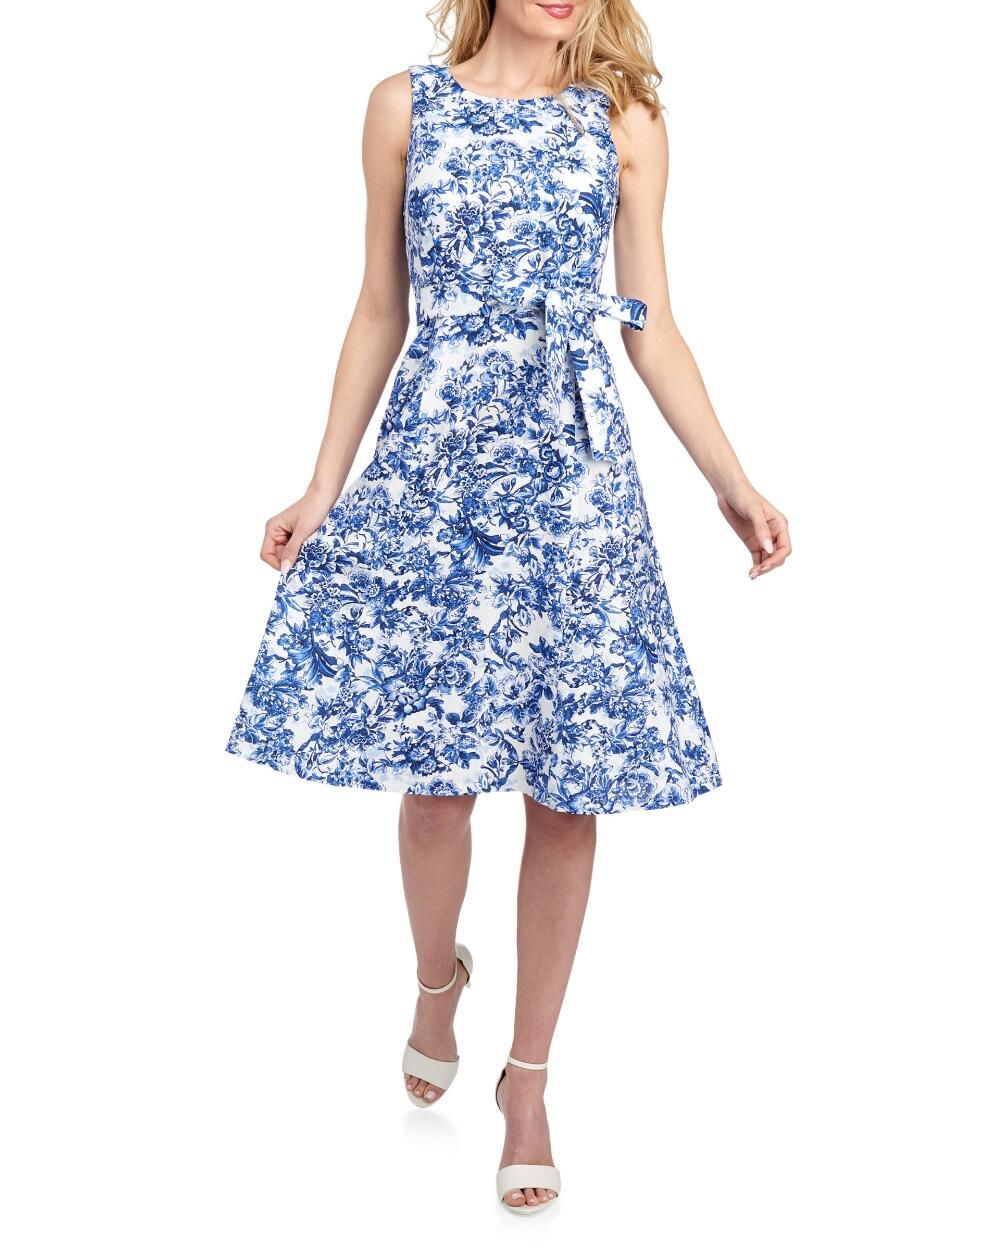 Floral Fit Flare Midi Dress Stein Mart In 2020 Fit And Flare Dress Midi Dress Floral Fit [ 1250 x 1000 Pixel ]